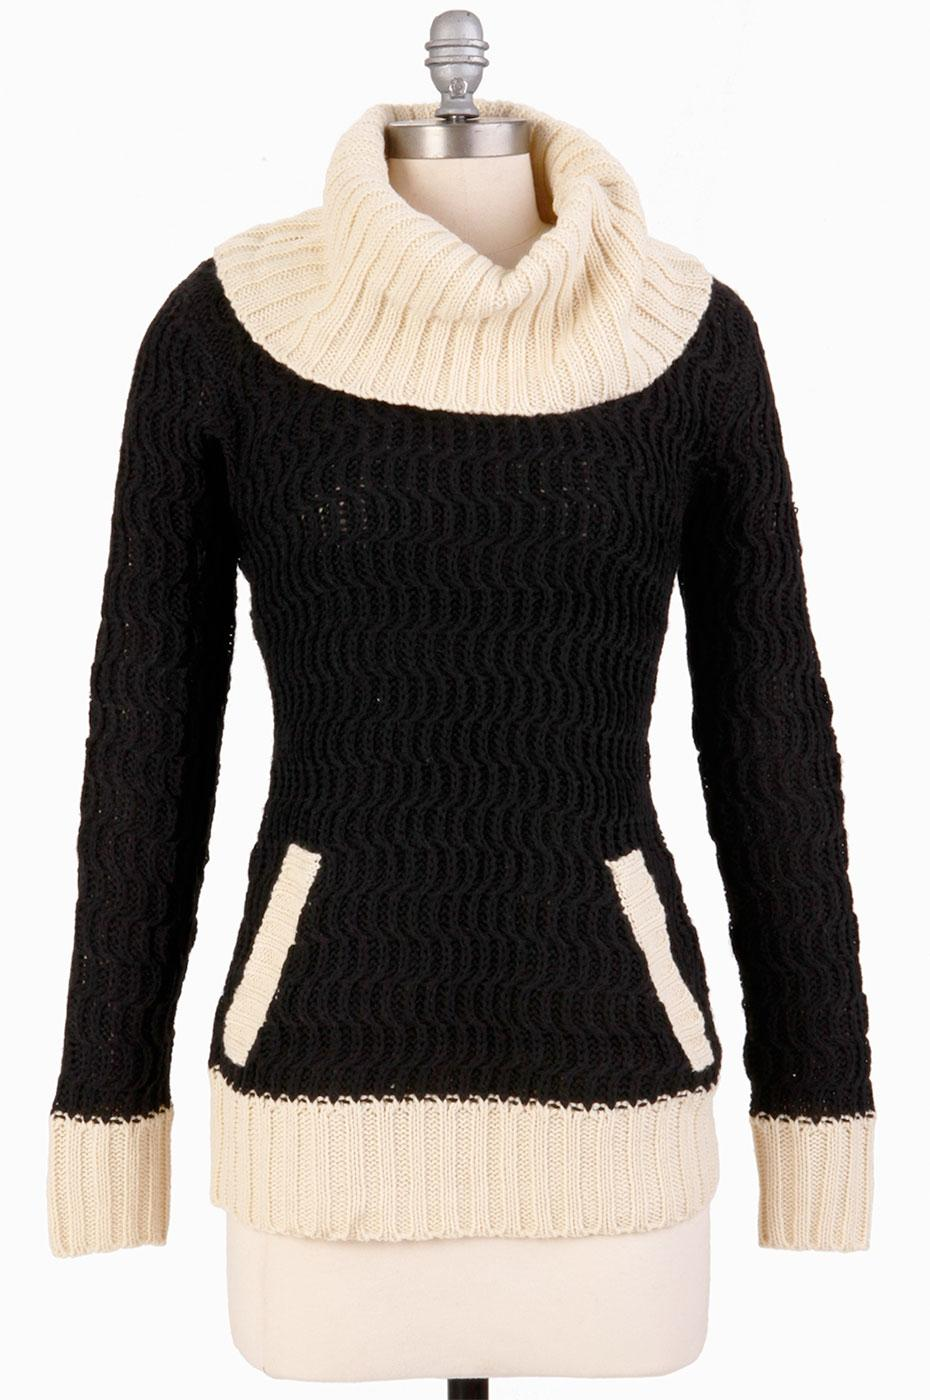 TULLE Retro 60s Mod Cowl Neck Elbow Patch Jumper